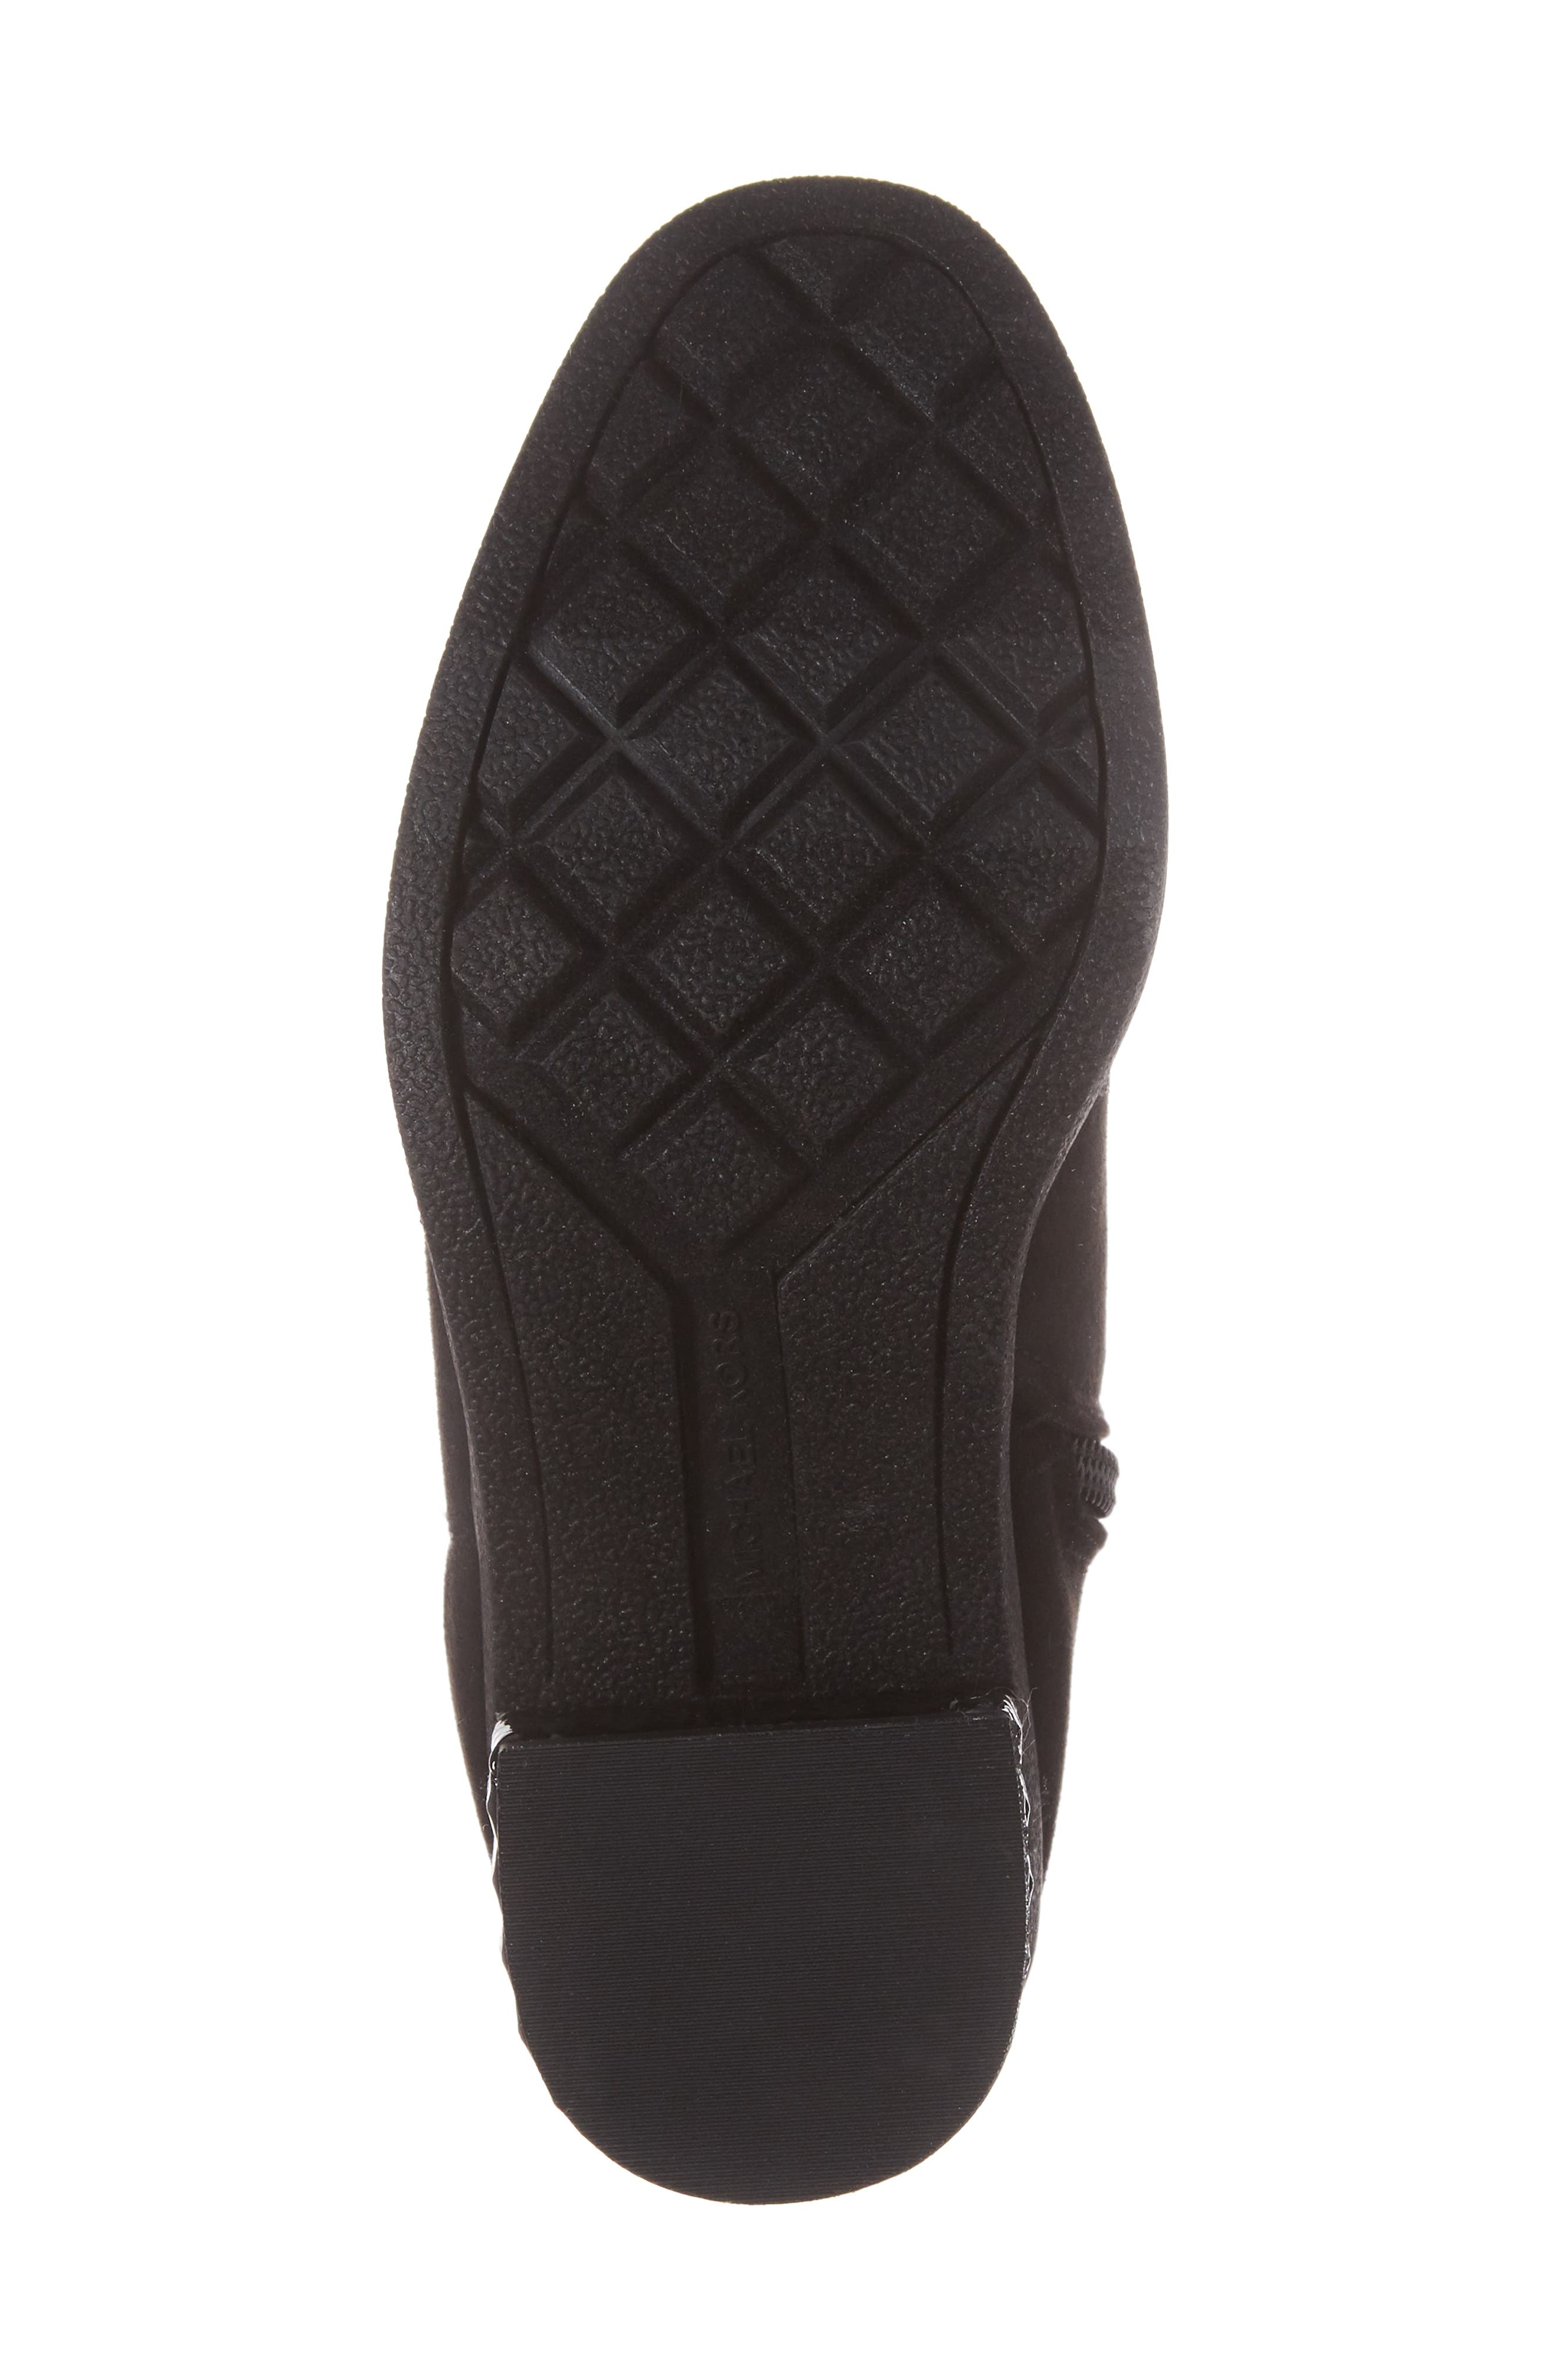 Fawn Dawn Bootie,                             Alternate thumbnail 6, color,                             Black